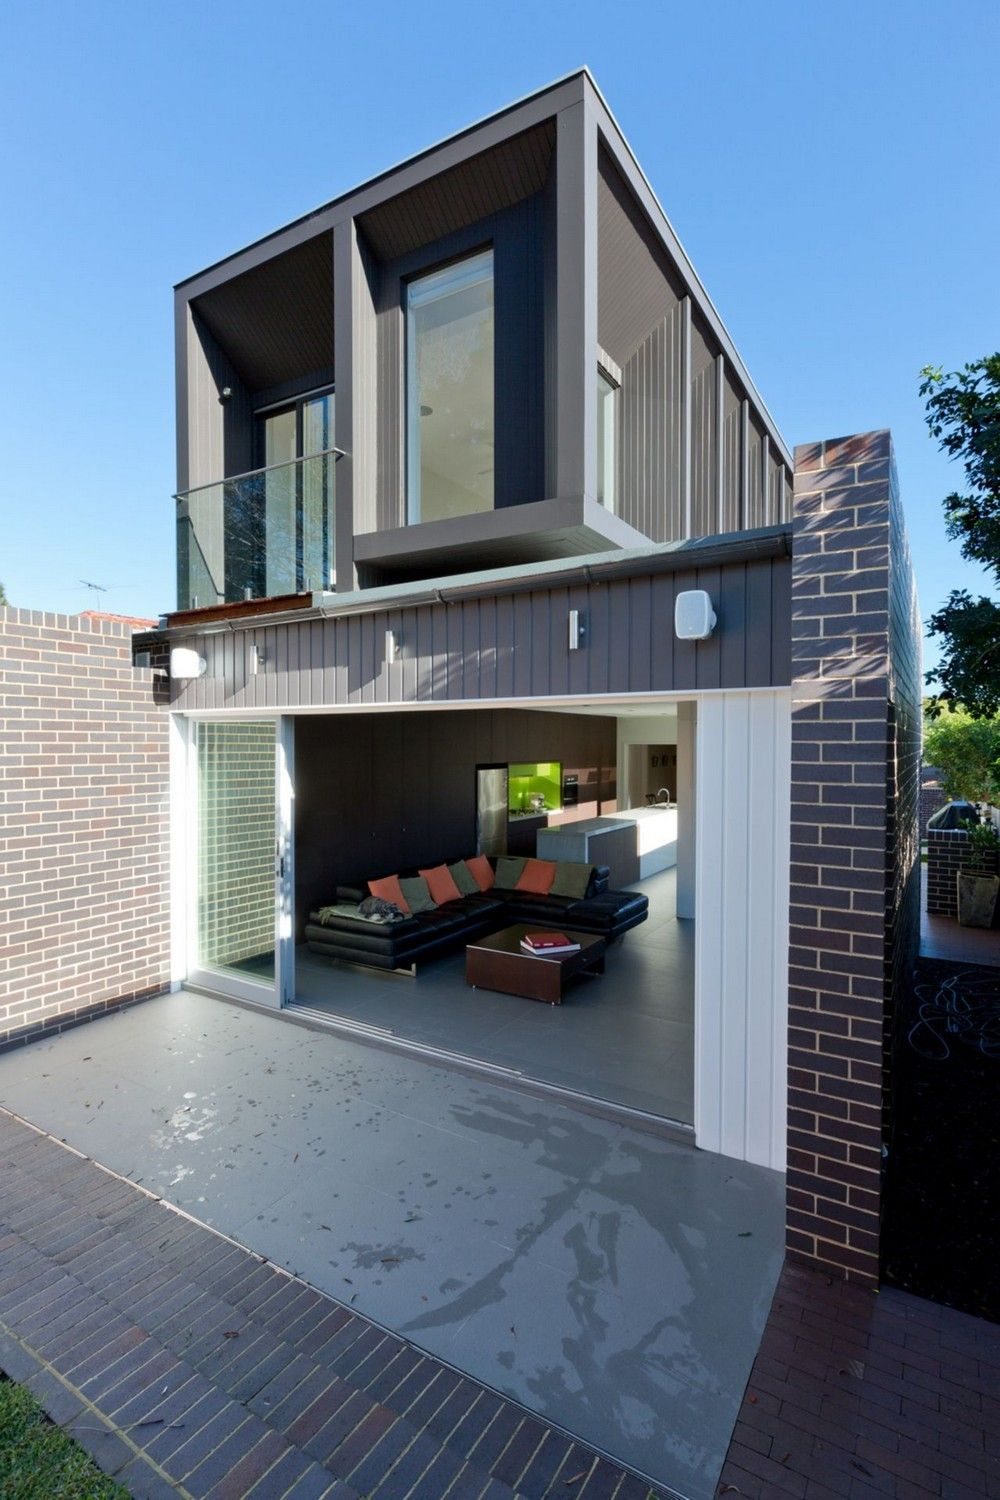 Modern Architecture Mansions modern architecture mansions pin and more on intended design